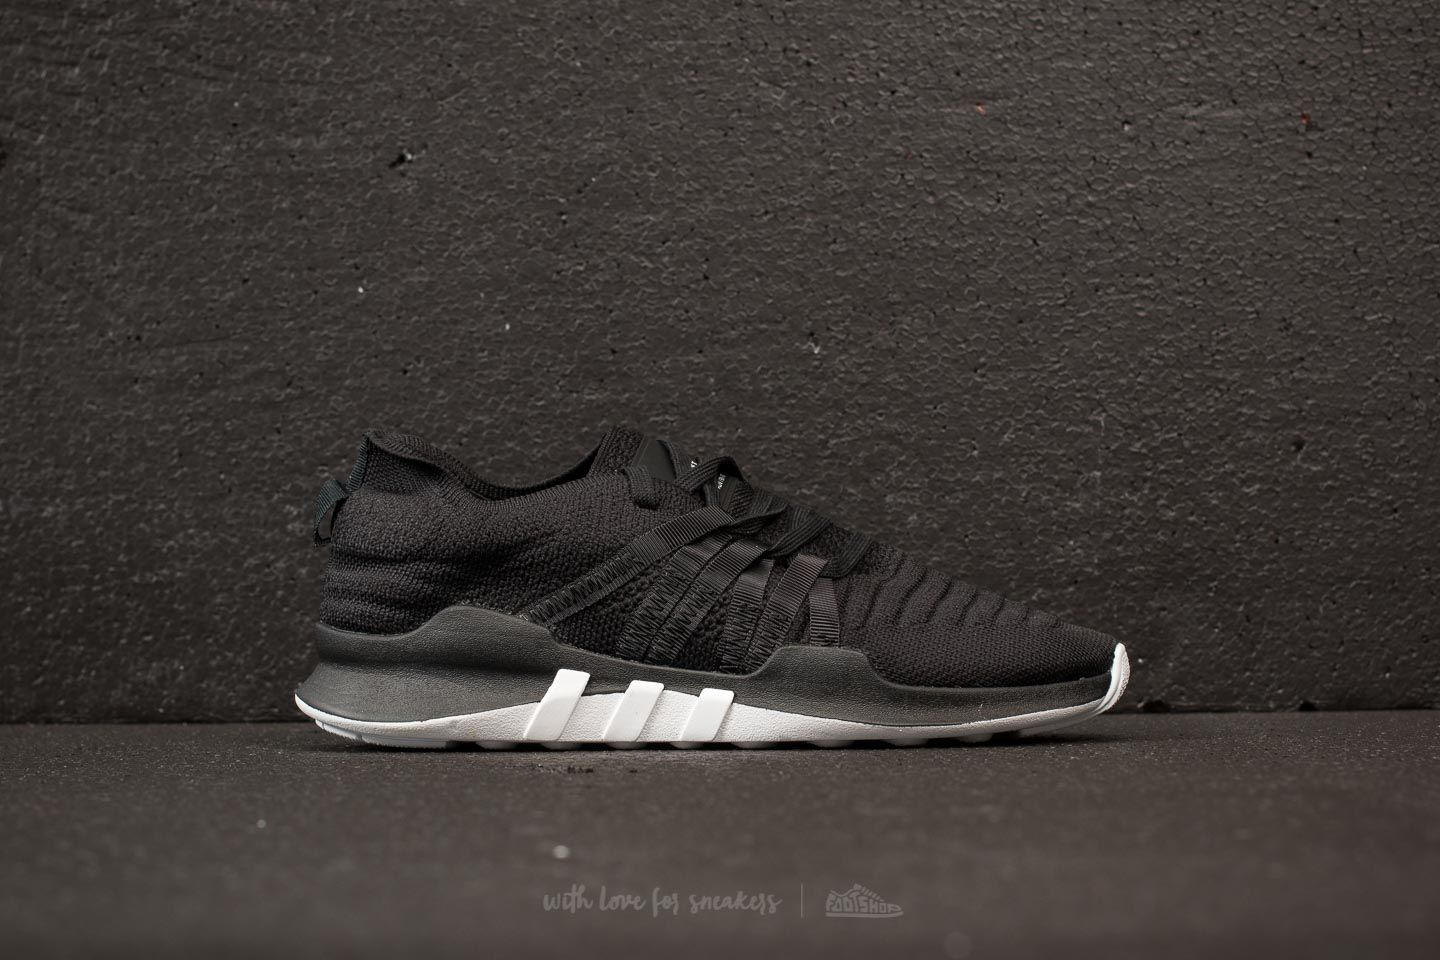 timeless design 03364 1177f adidas EQT Racing ADV Primeknit W Core Black Core Black Ftw White at a